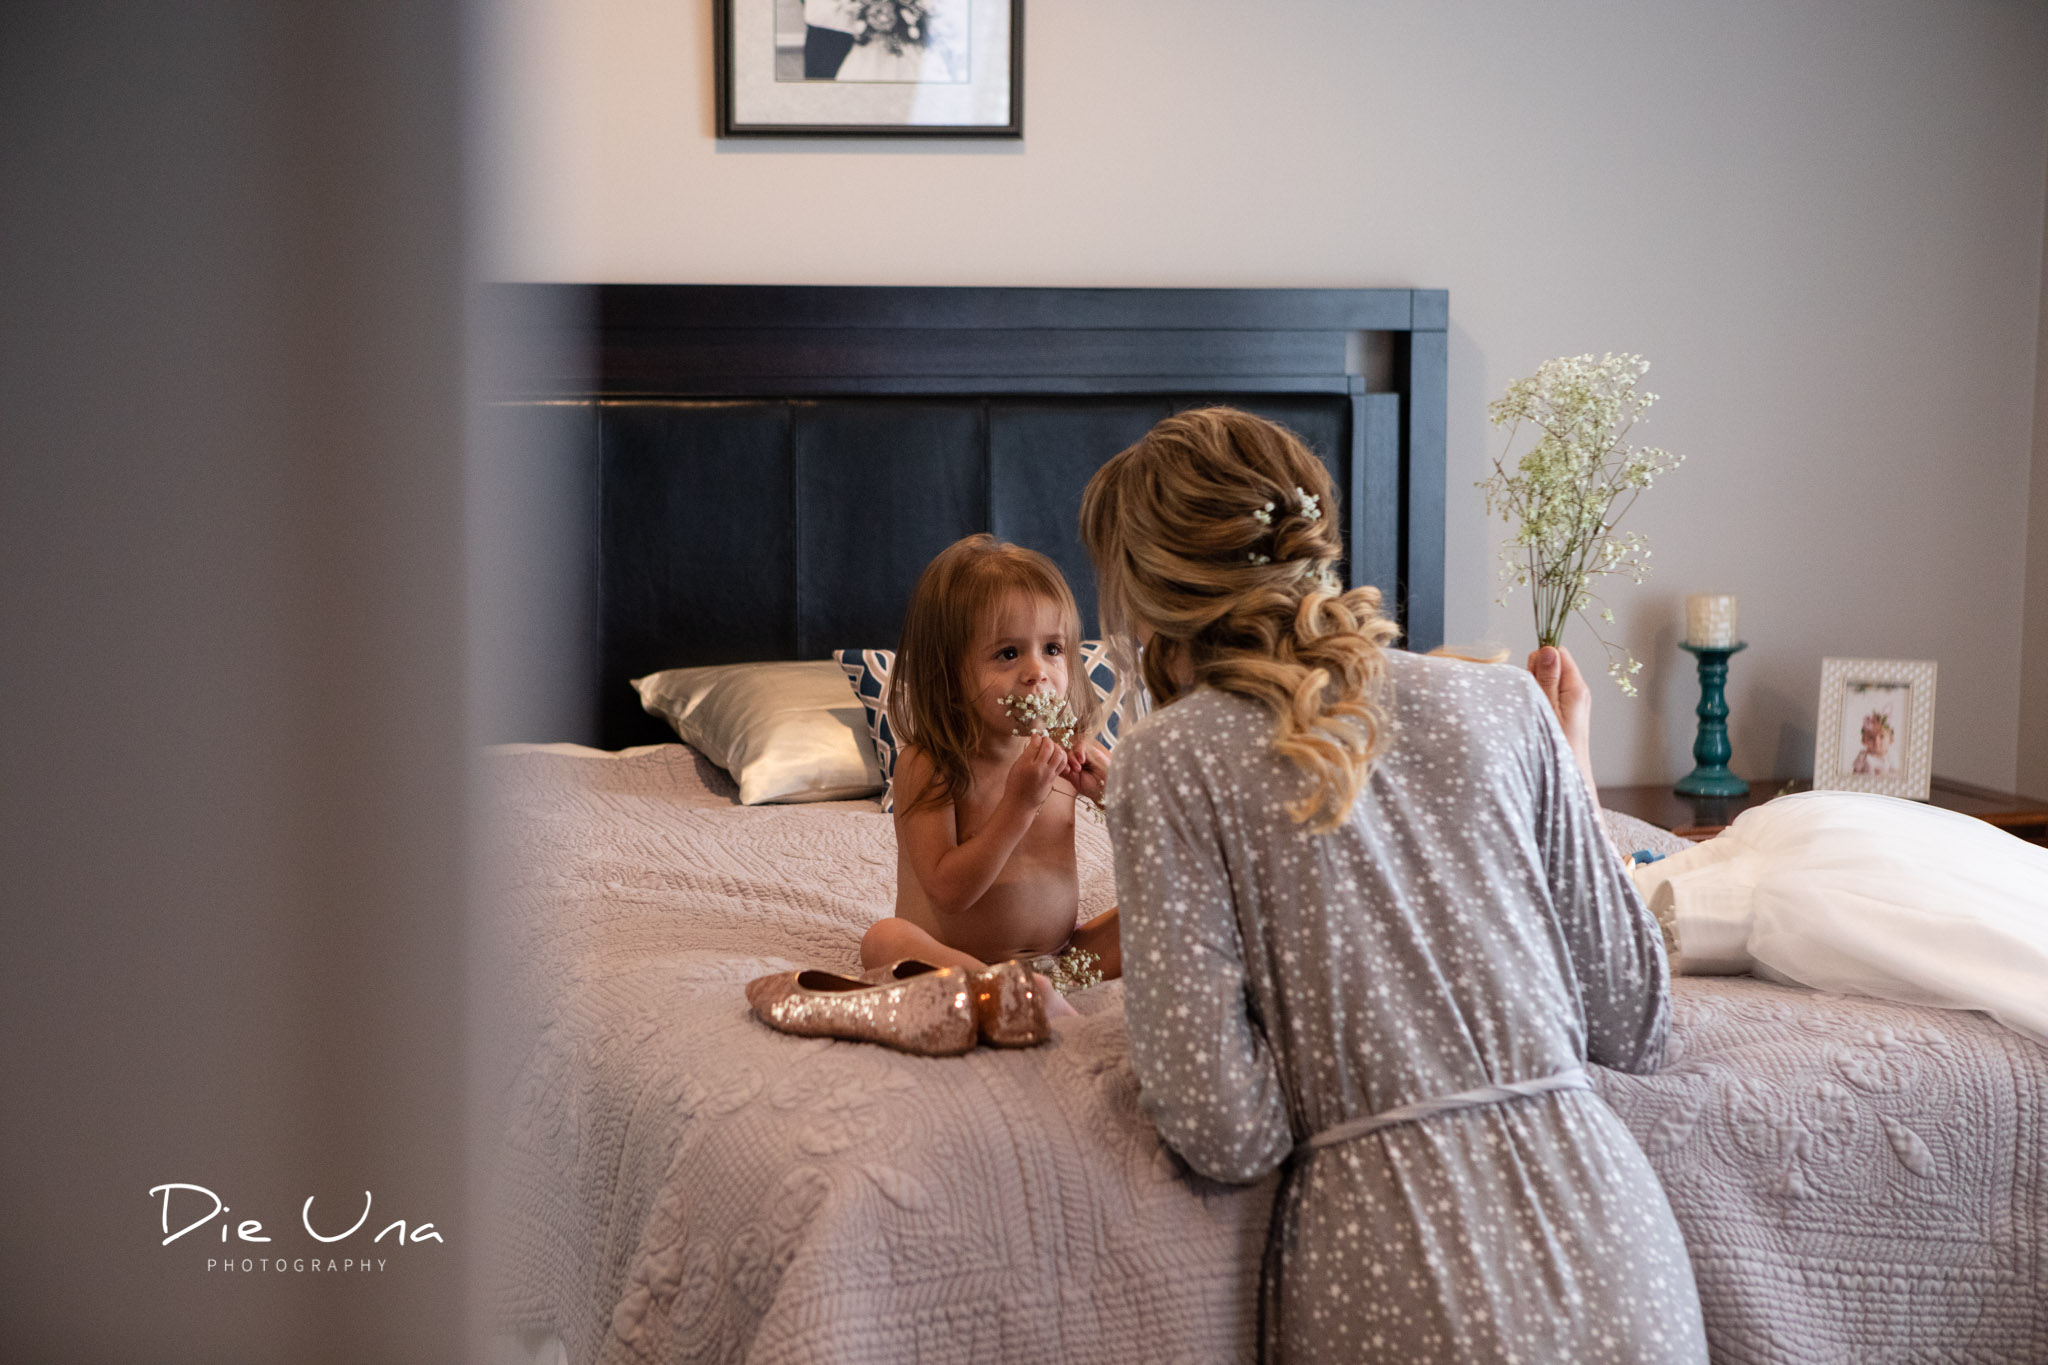 flower girl and bride having a touching moment while getting dressed for wedding.jpg